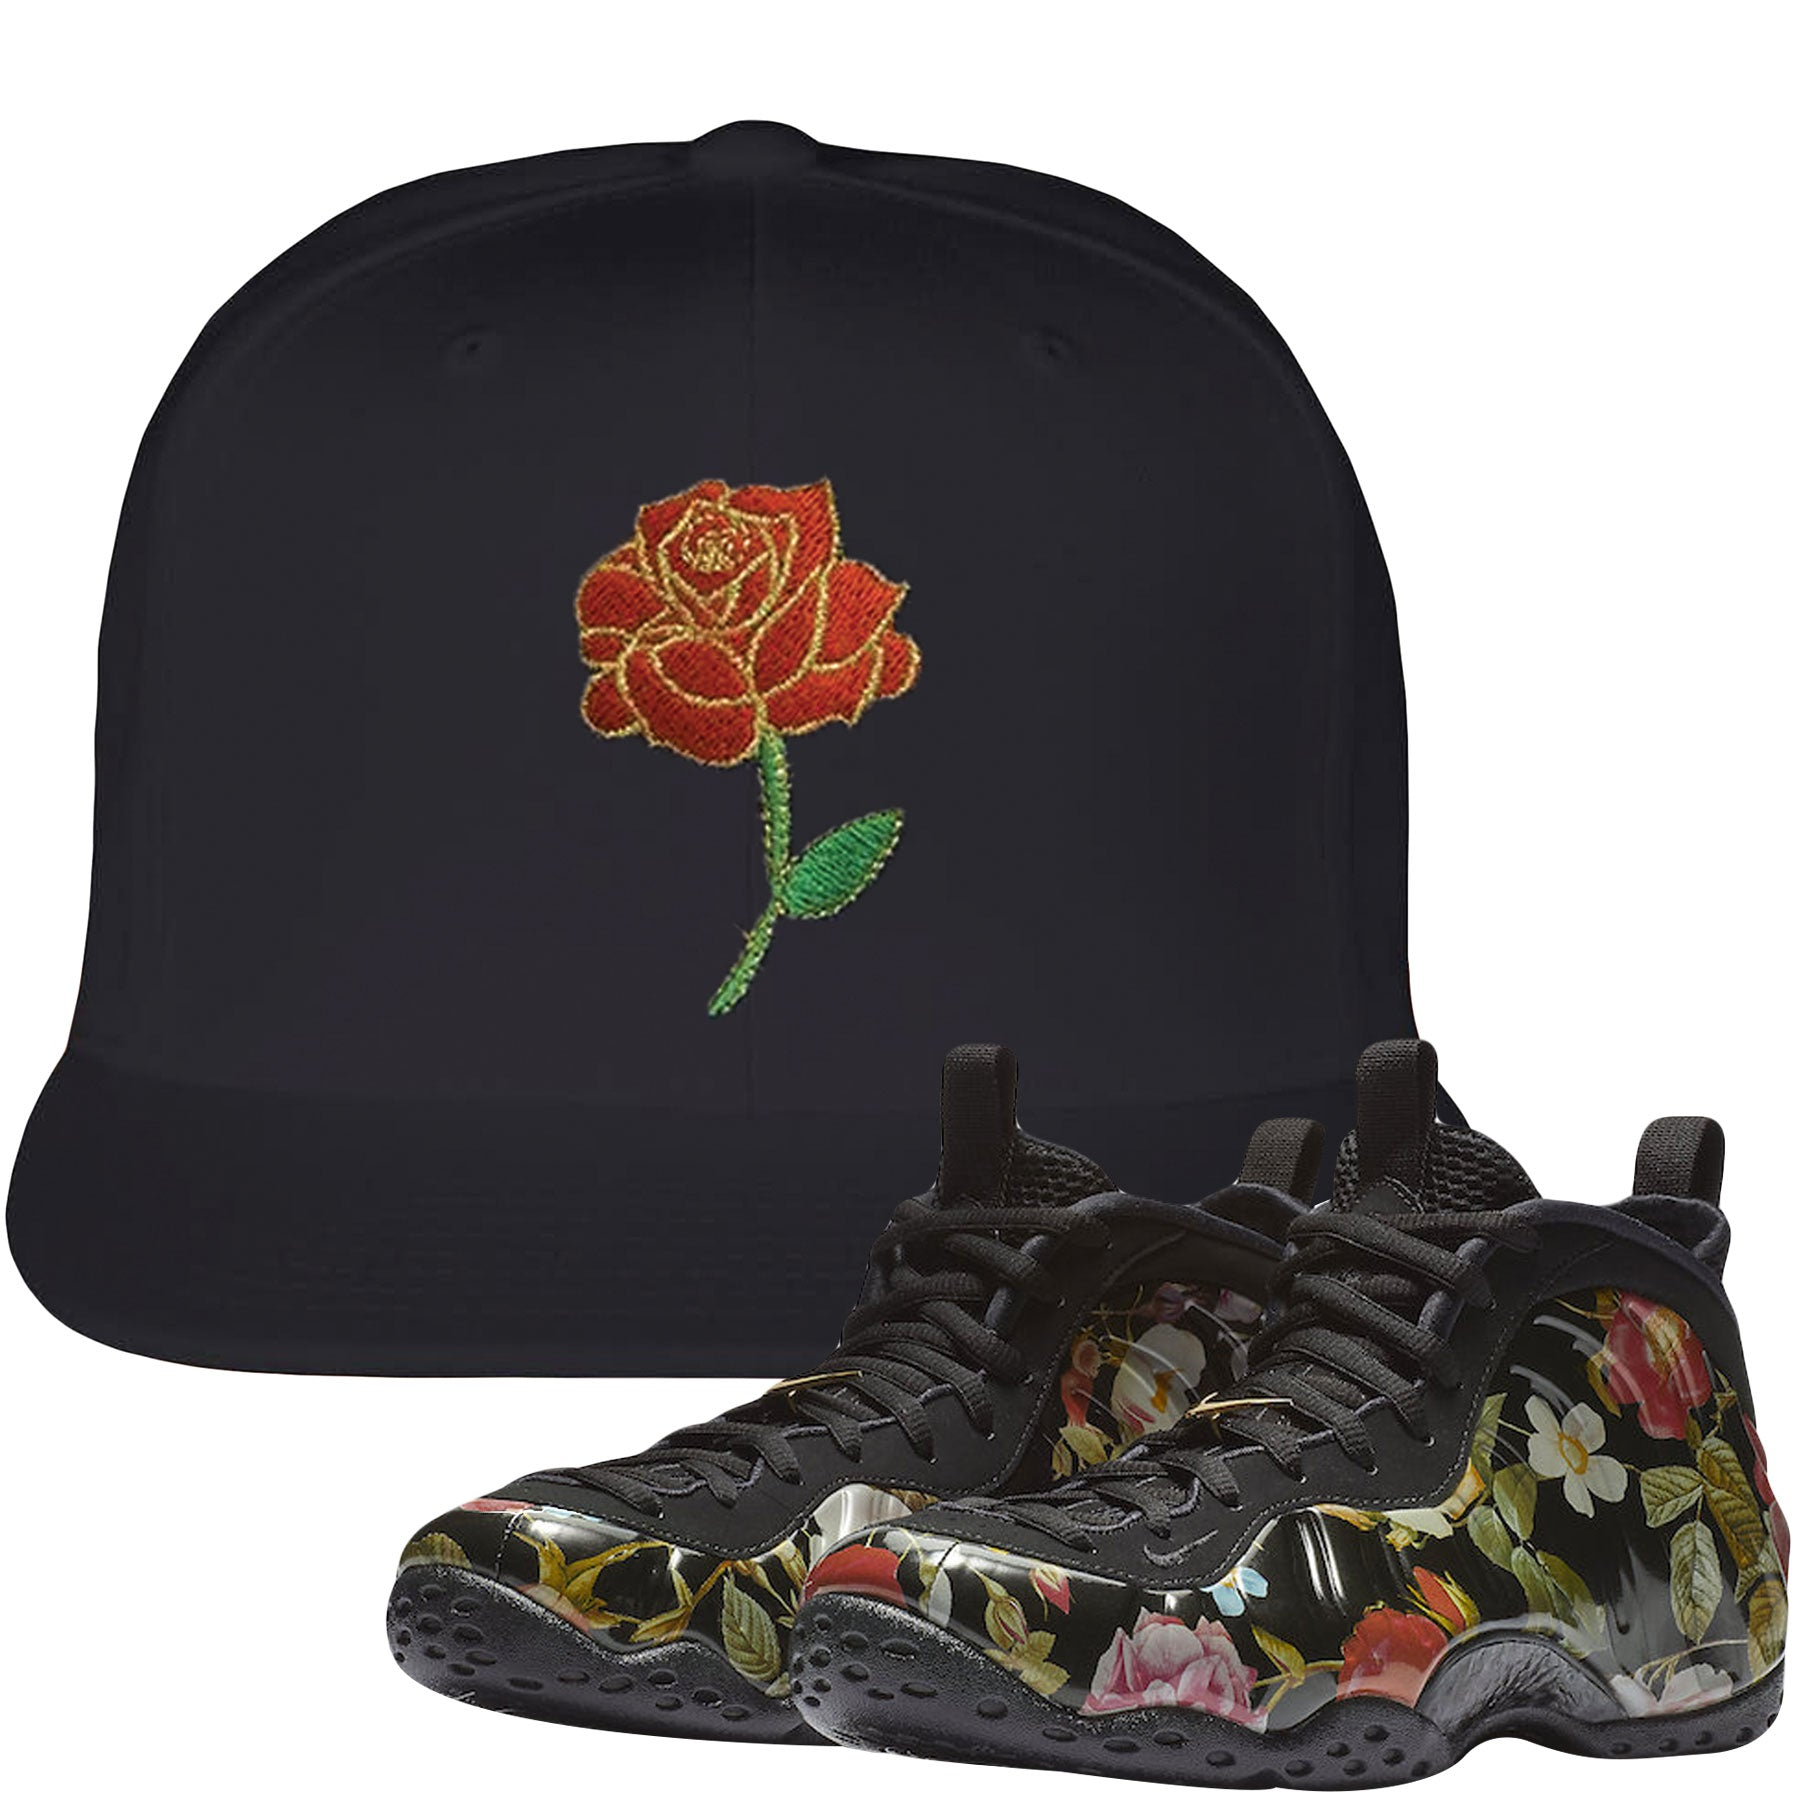 4e40af60abb Wear this sneaker matching hat to match your Air Foamposite One Floral  sneakers. Match your